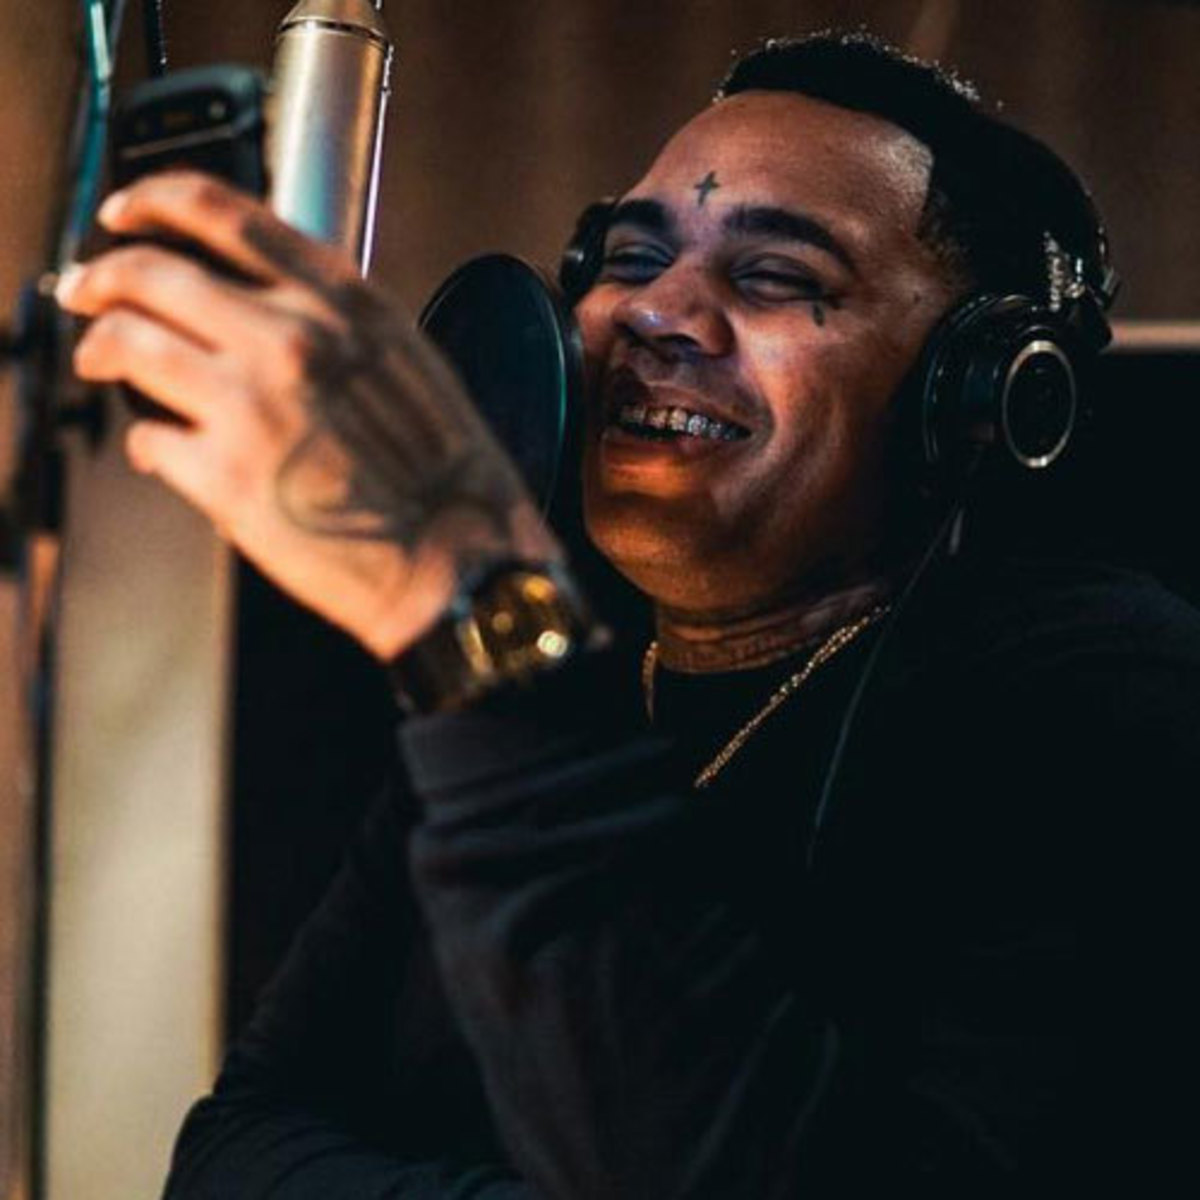 kevin-gates-no-new-albums.jpg